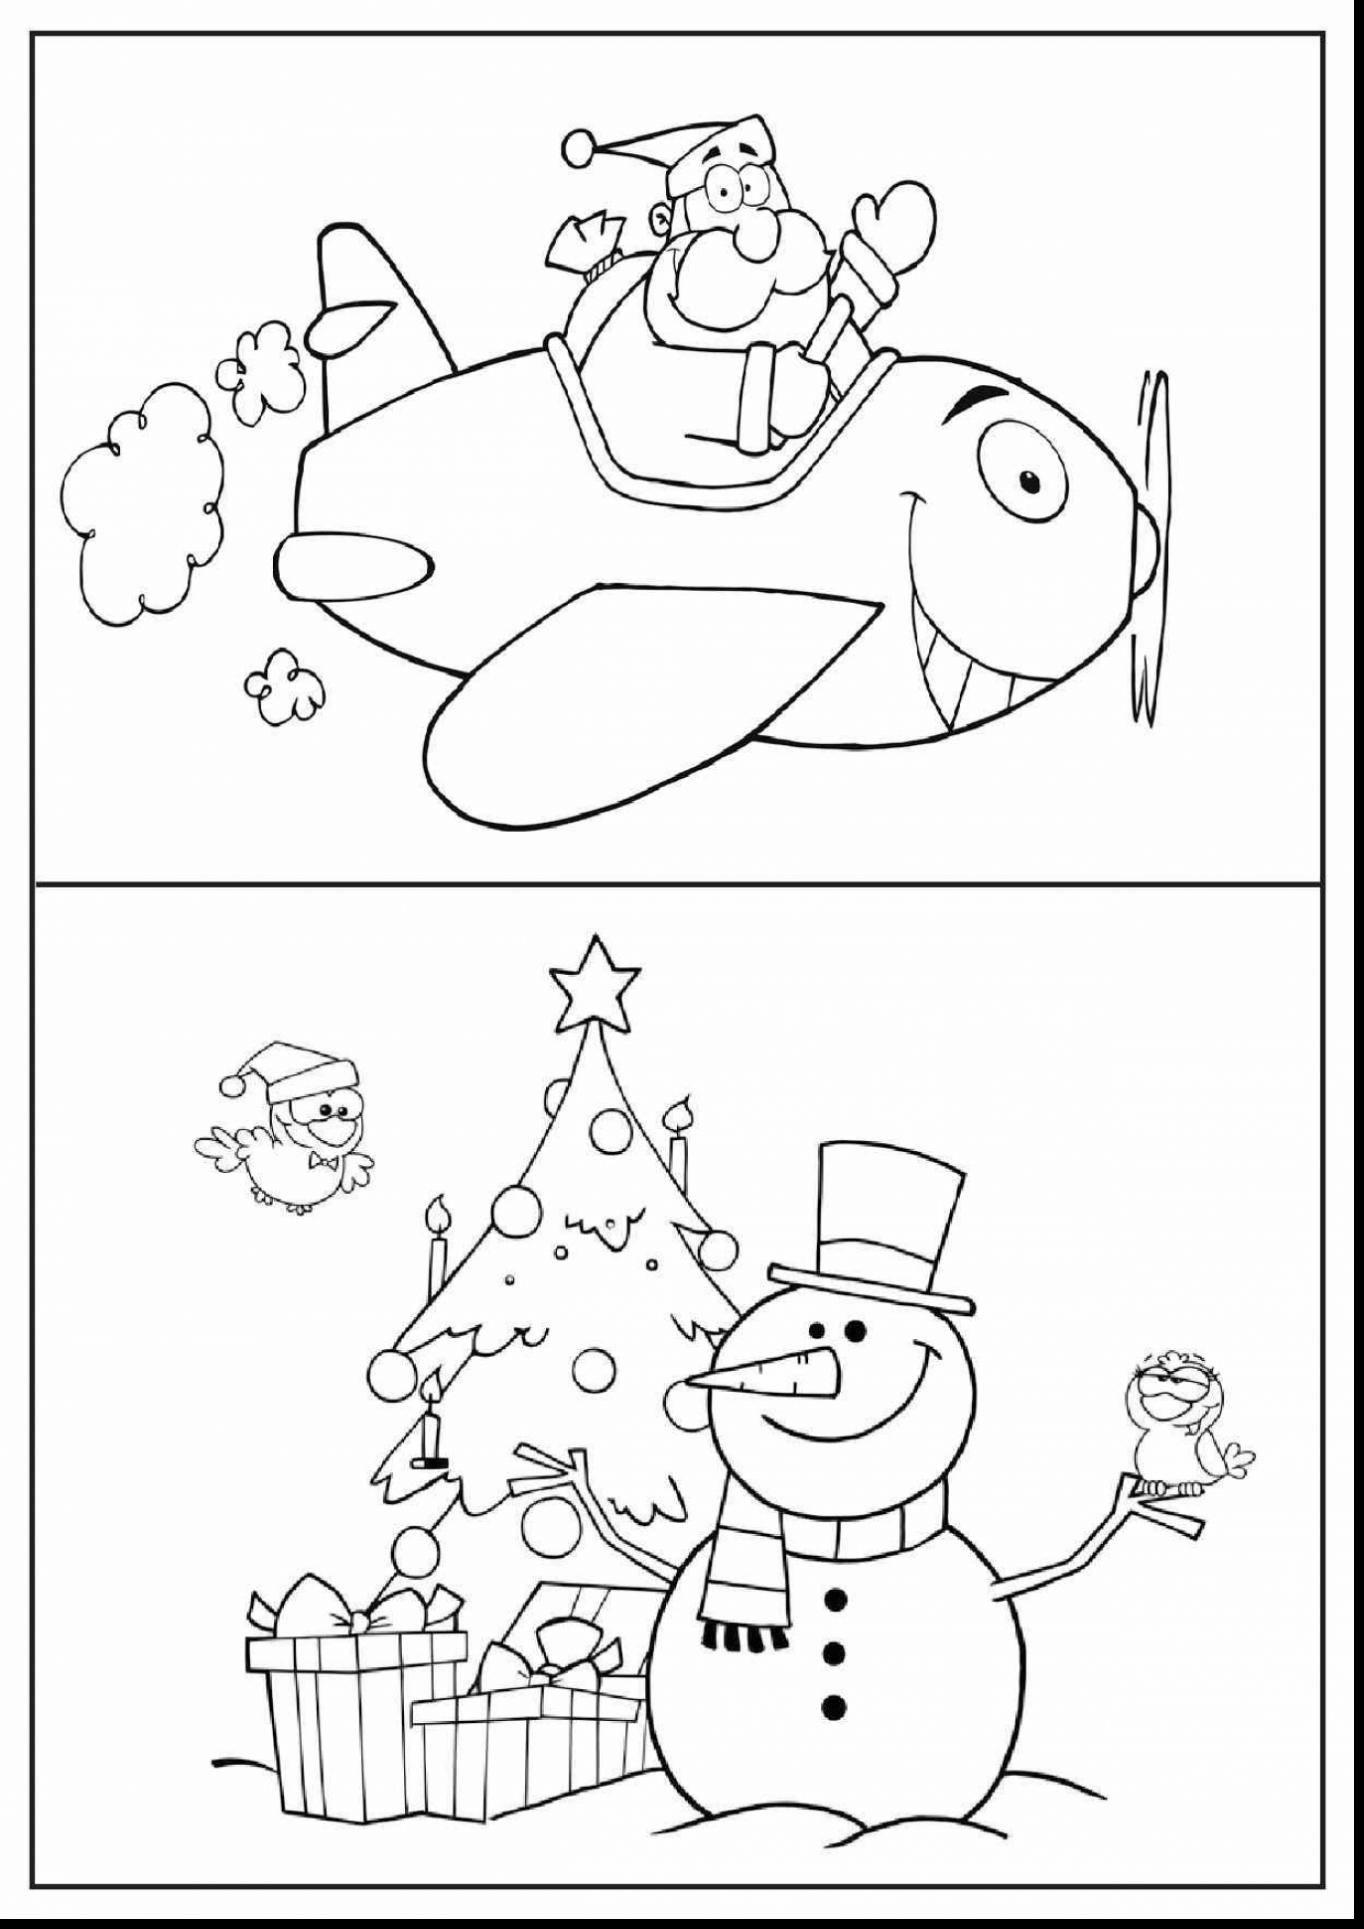 Teacher Appreciation Coloring Pages At Getcolorings